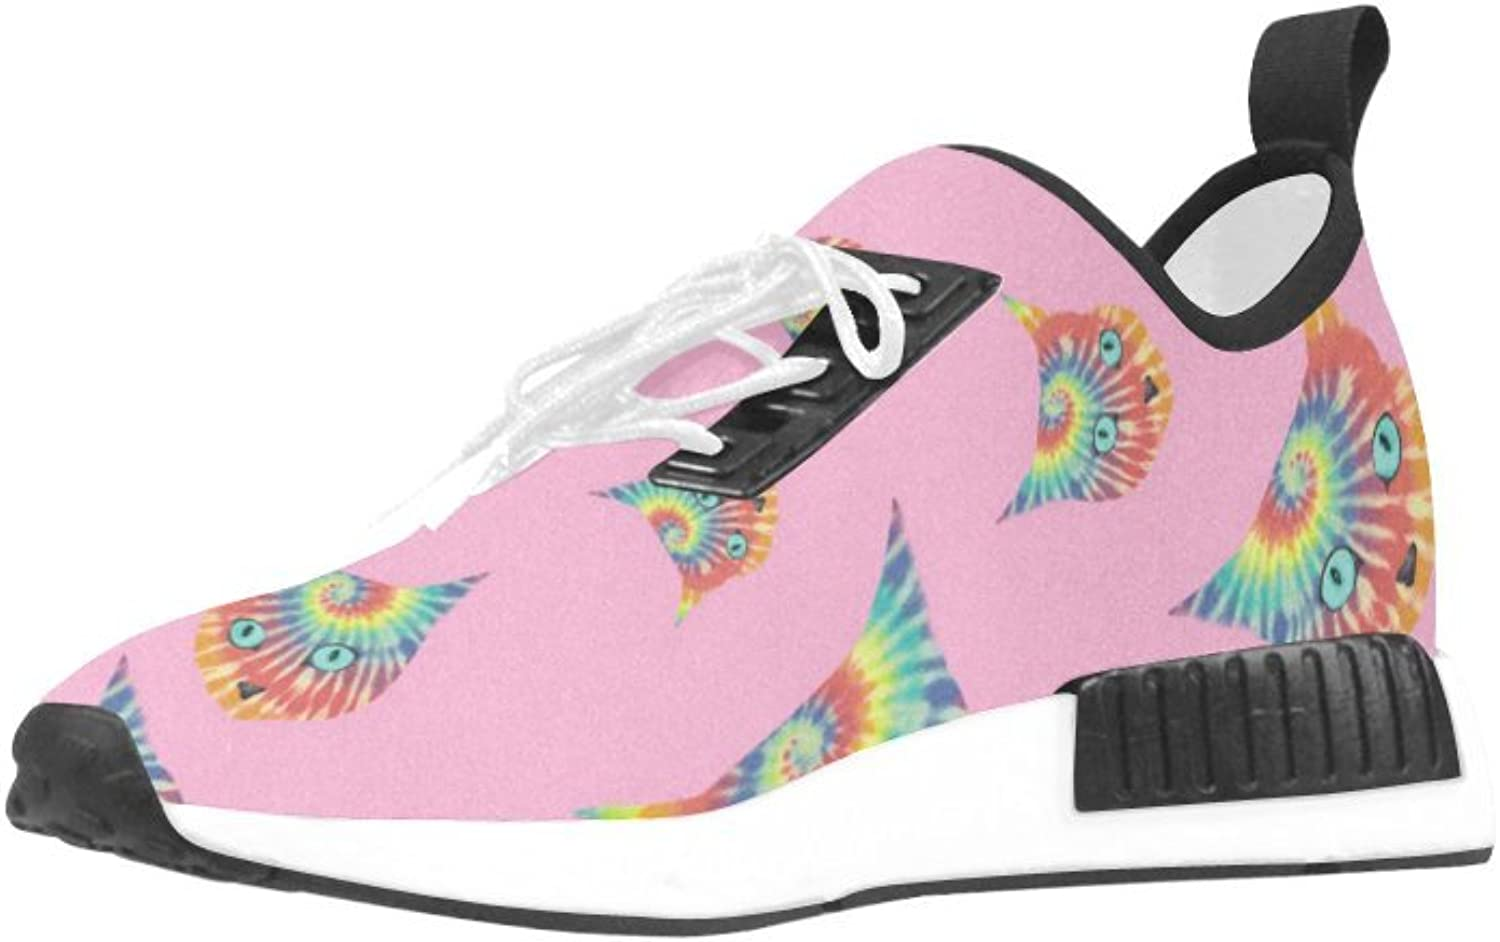 CERLYRUAN Rainbow Space Cat Mesh Cloth Breathable Woven Leather Insole Running shoes for Women